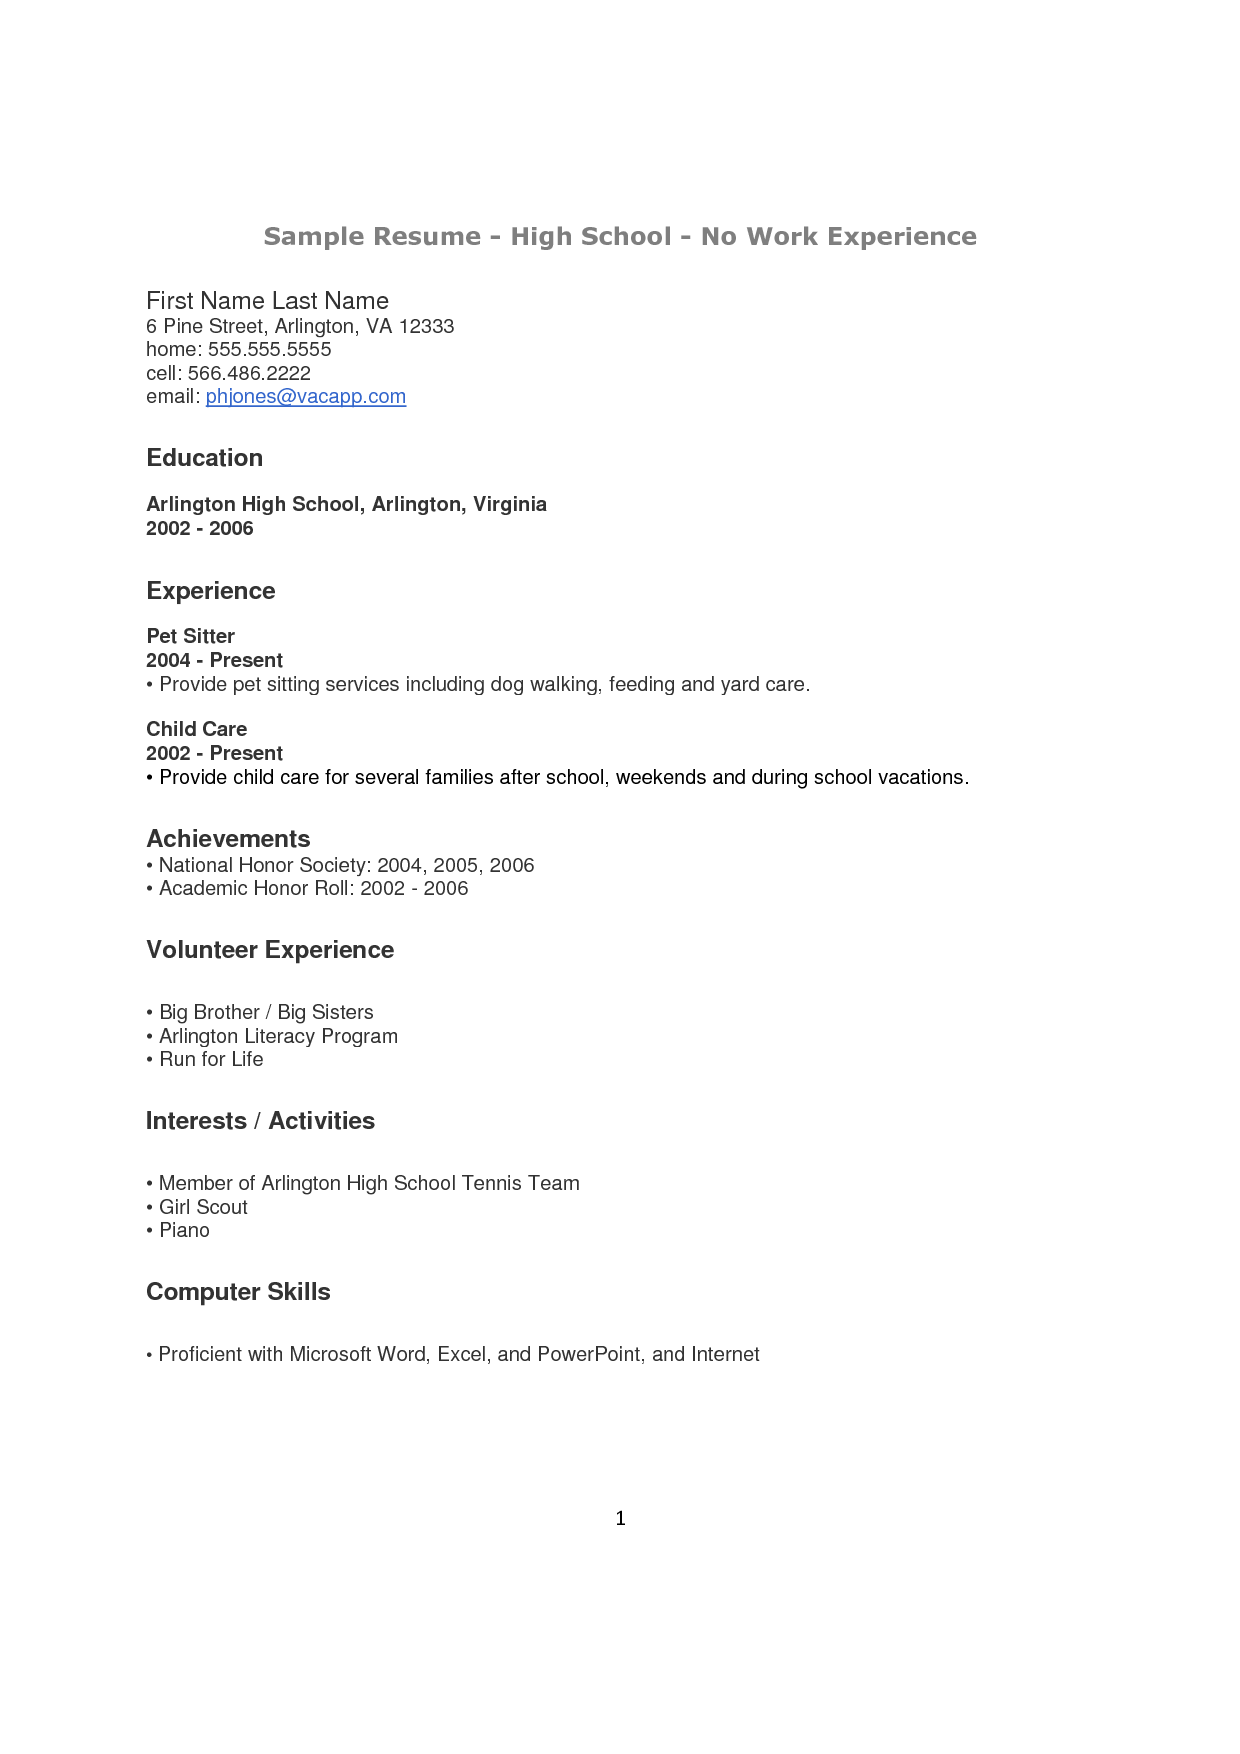 How To Prepare A Resume Gorgeous How To Make A Resume For A Highschool Student With No Experience